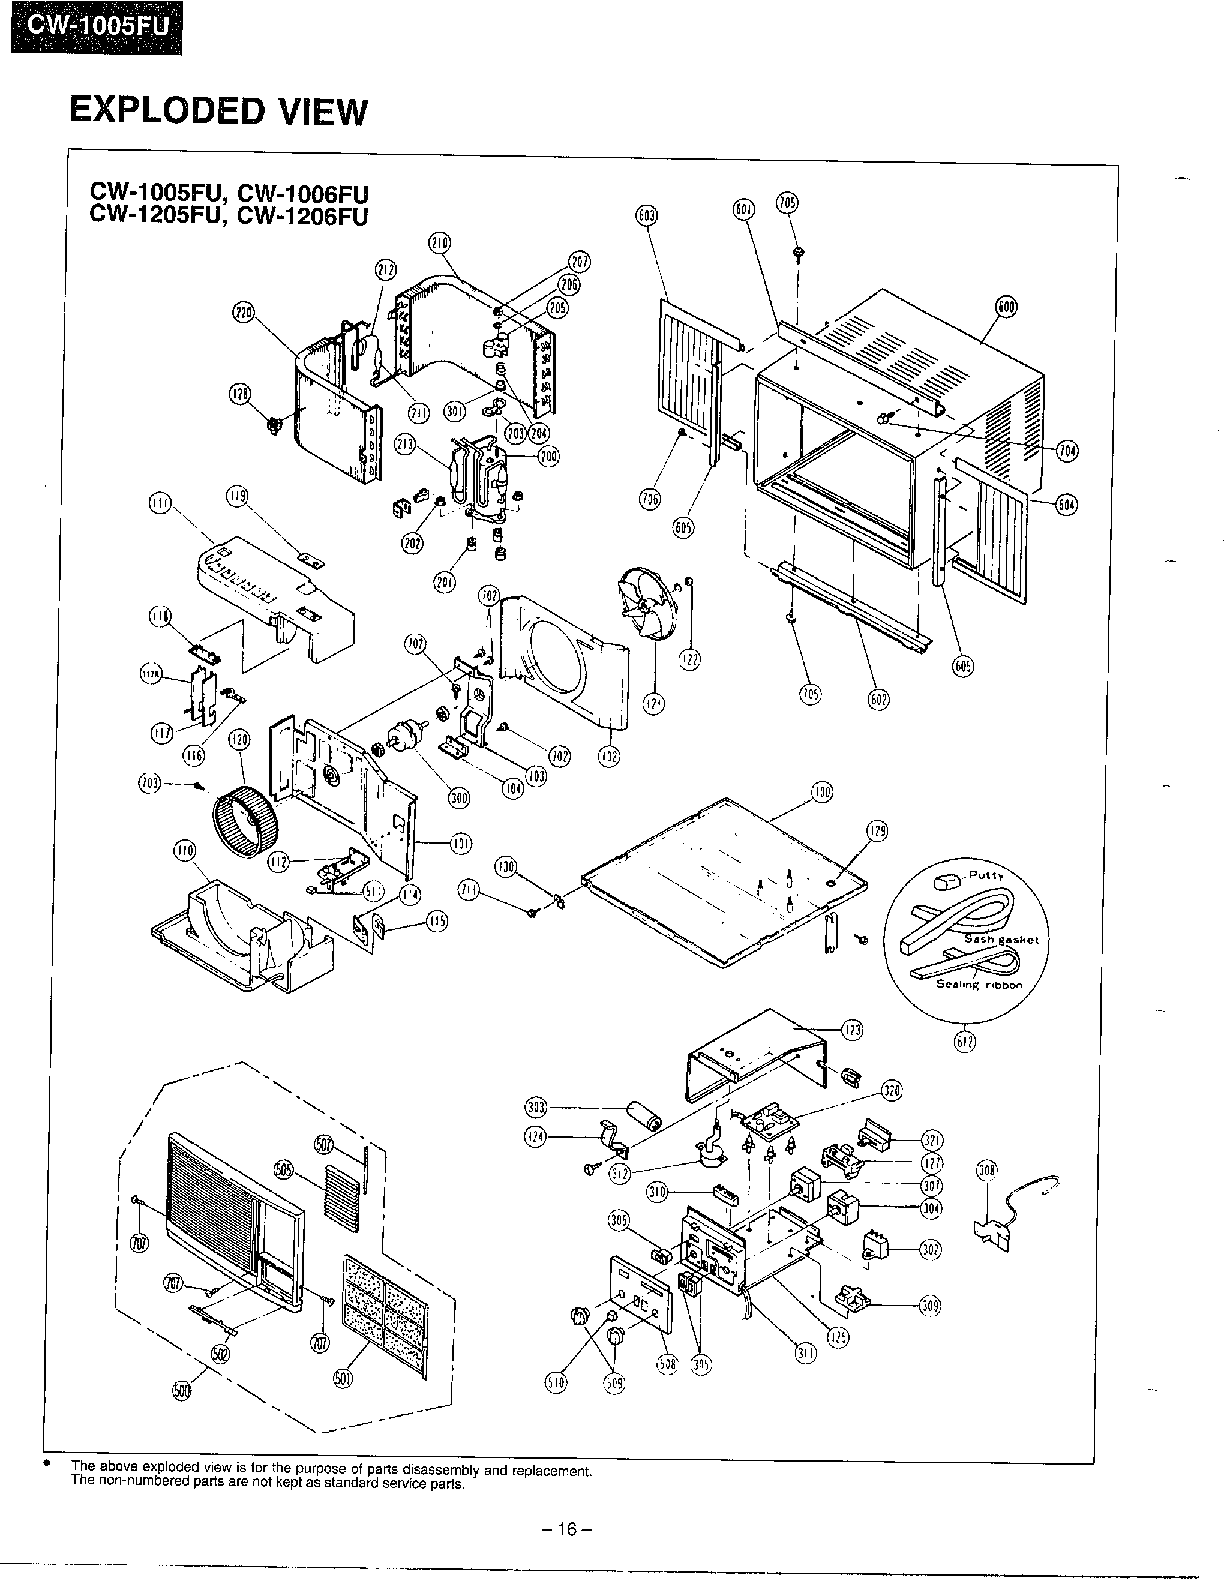 Wiring Diagram For A Sears Air Compressor Sears Air